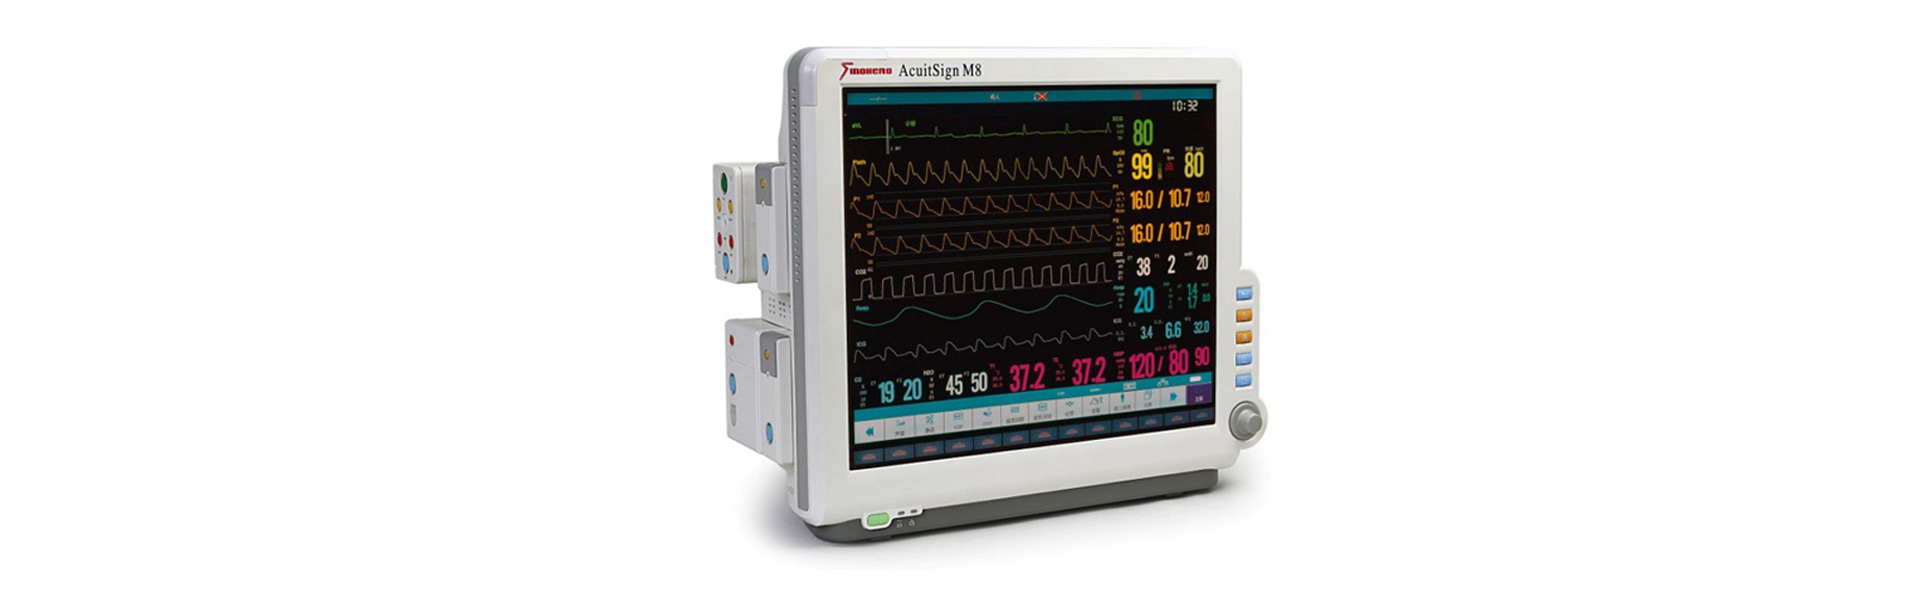 Touch Screen Patient Monitors - M8